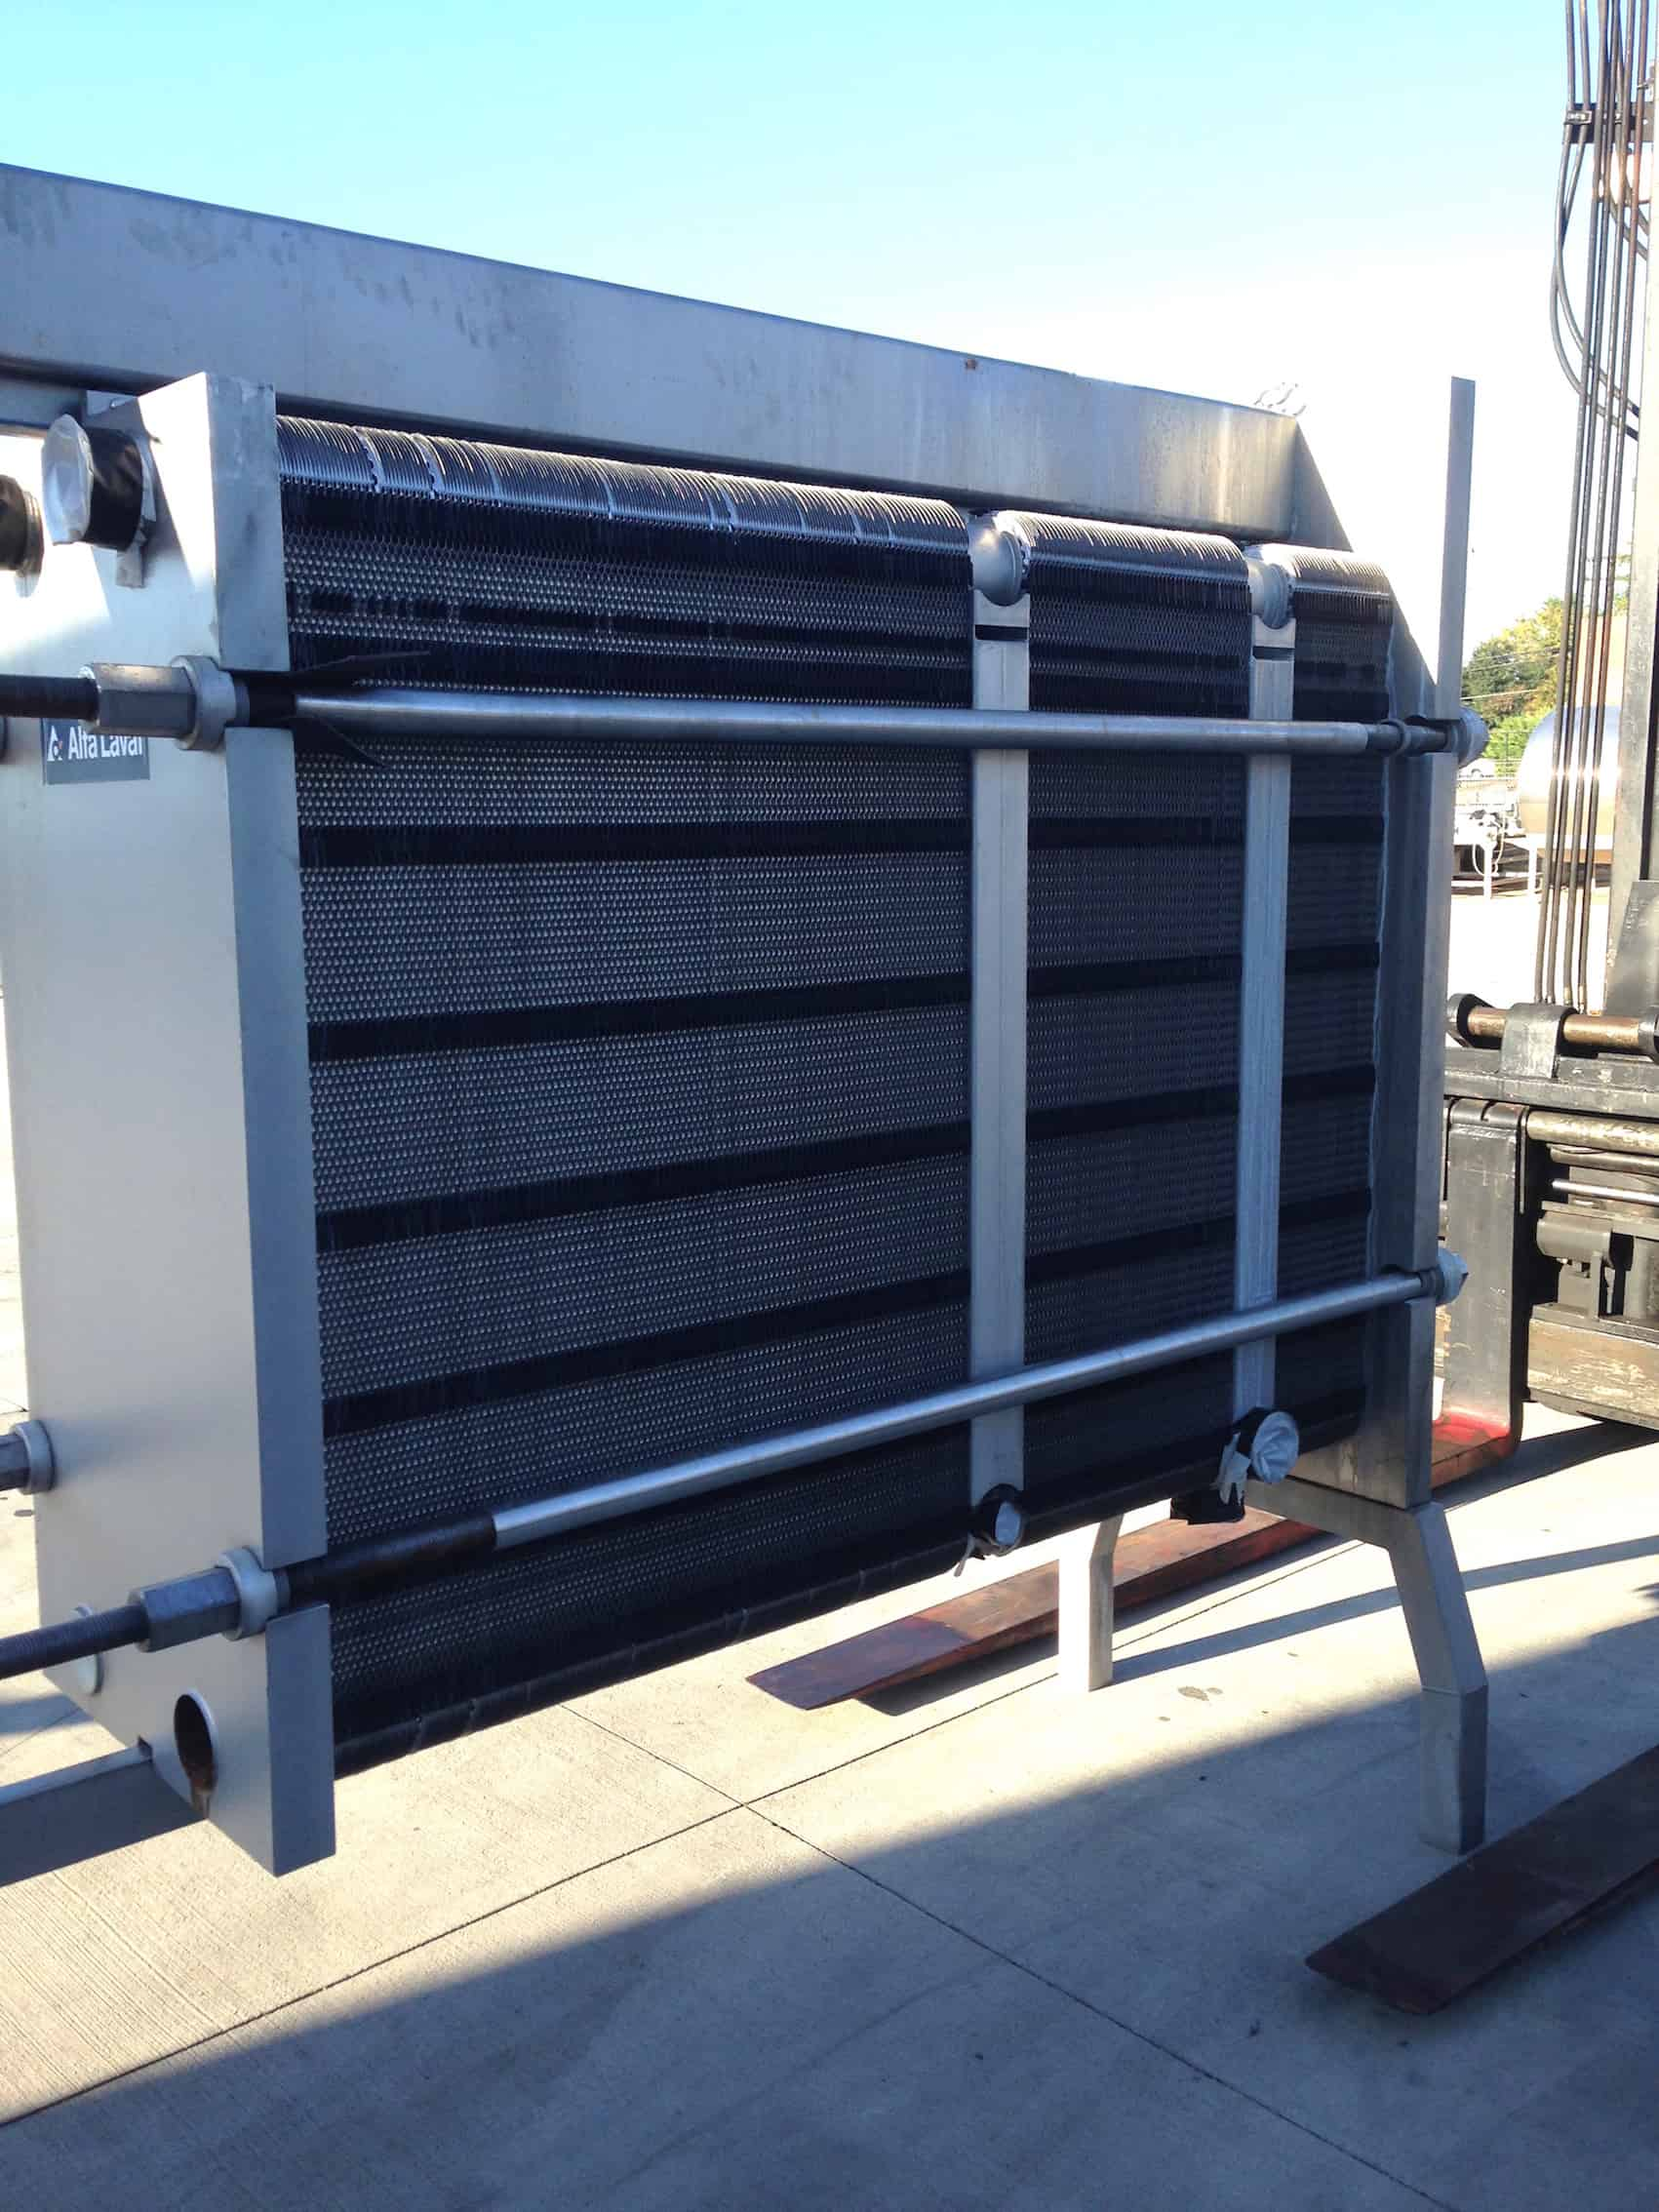 Alfa Laval Clip 10 Plate Heat Exchanger Model: Clip 10 RM Serial: 30105-51865, Stainless Steel Plates, Can be used to heat/chill product, Max Working Pressure – 145PSI, Max working temperature – 230ºF, Good Condition, Last used in Food Plant(Located in North Carolina) ***FBEV***